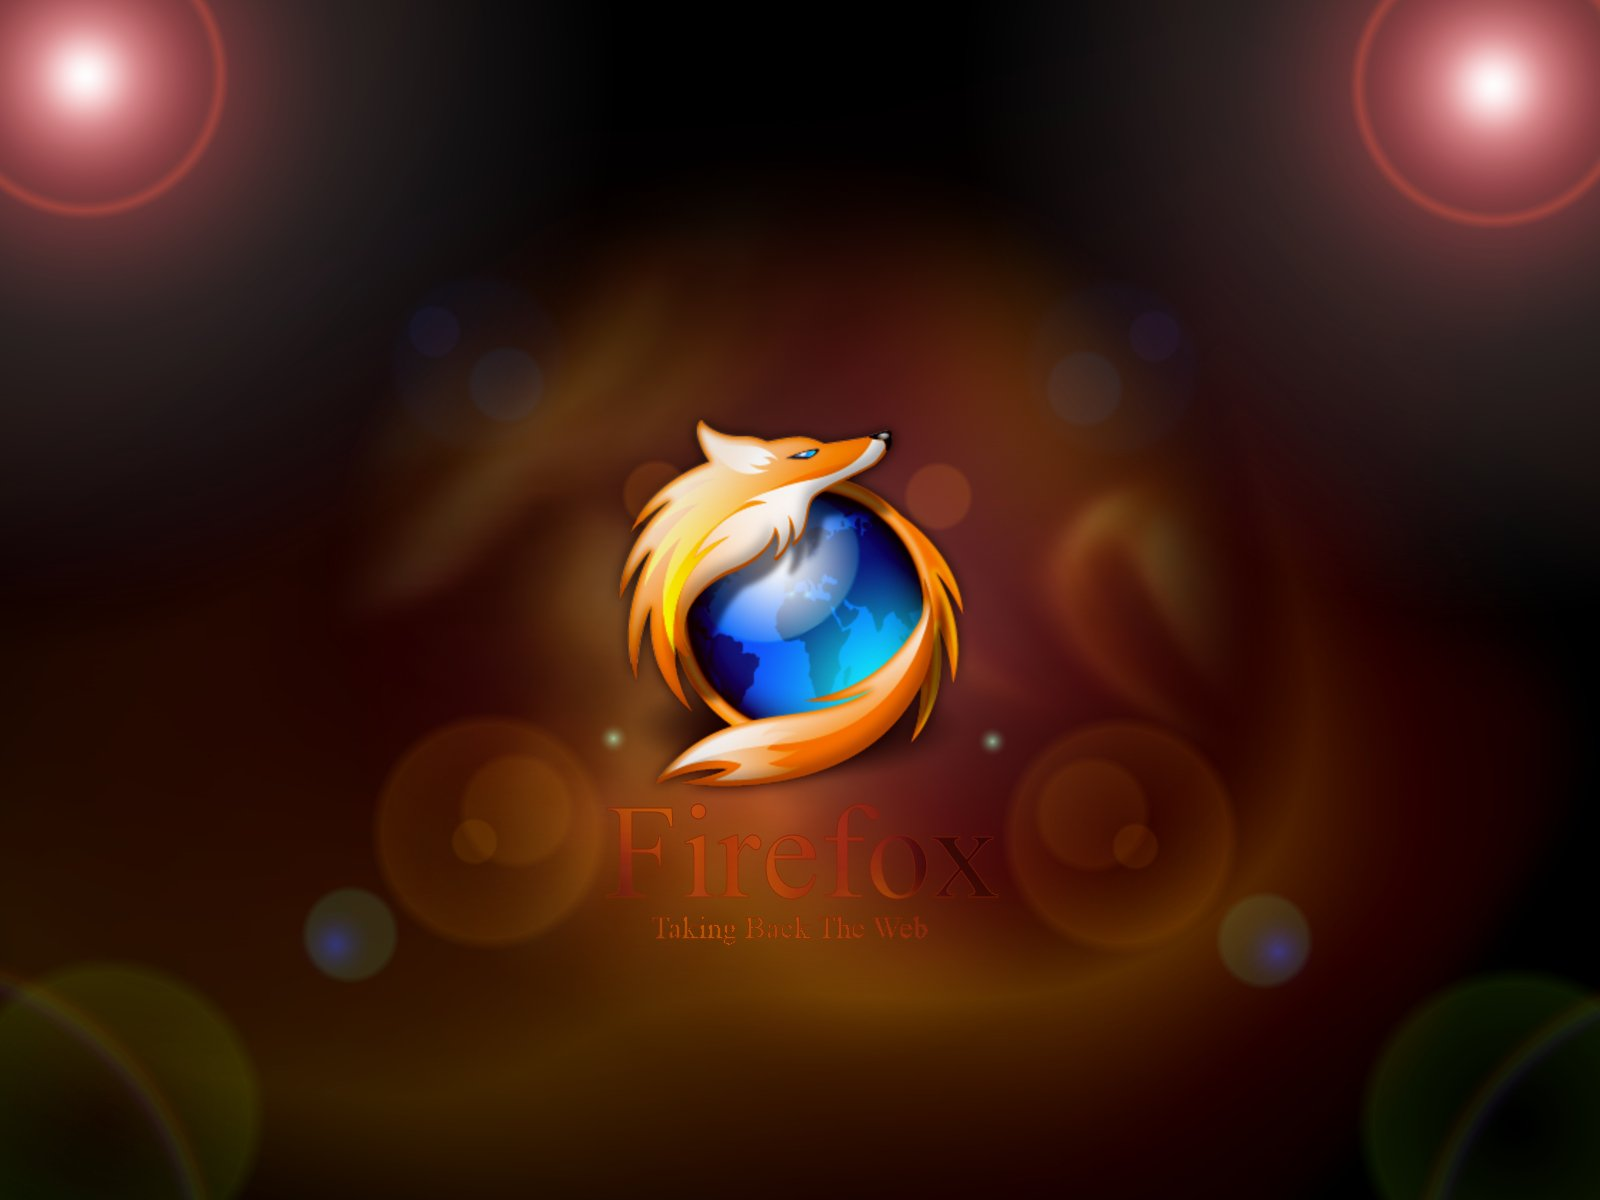 120 Beautiful Firefox Wallpapers for Your Desktop 1600x1200